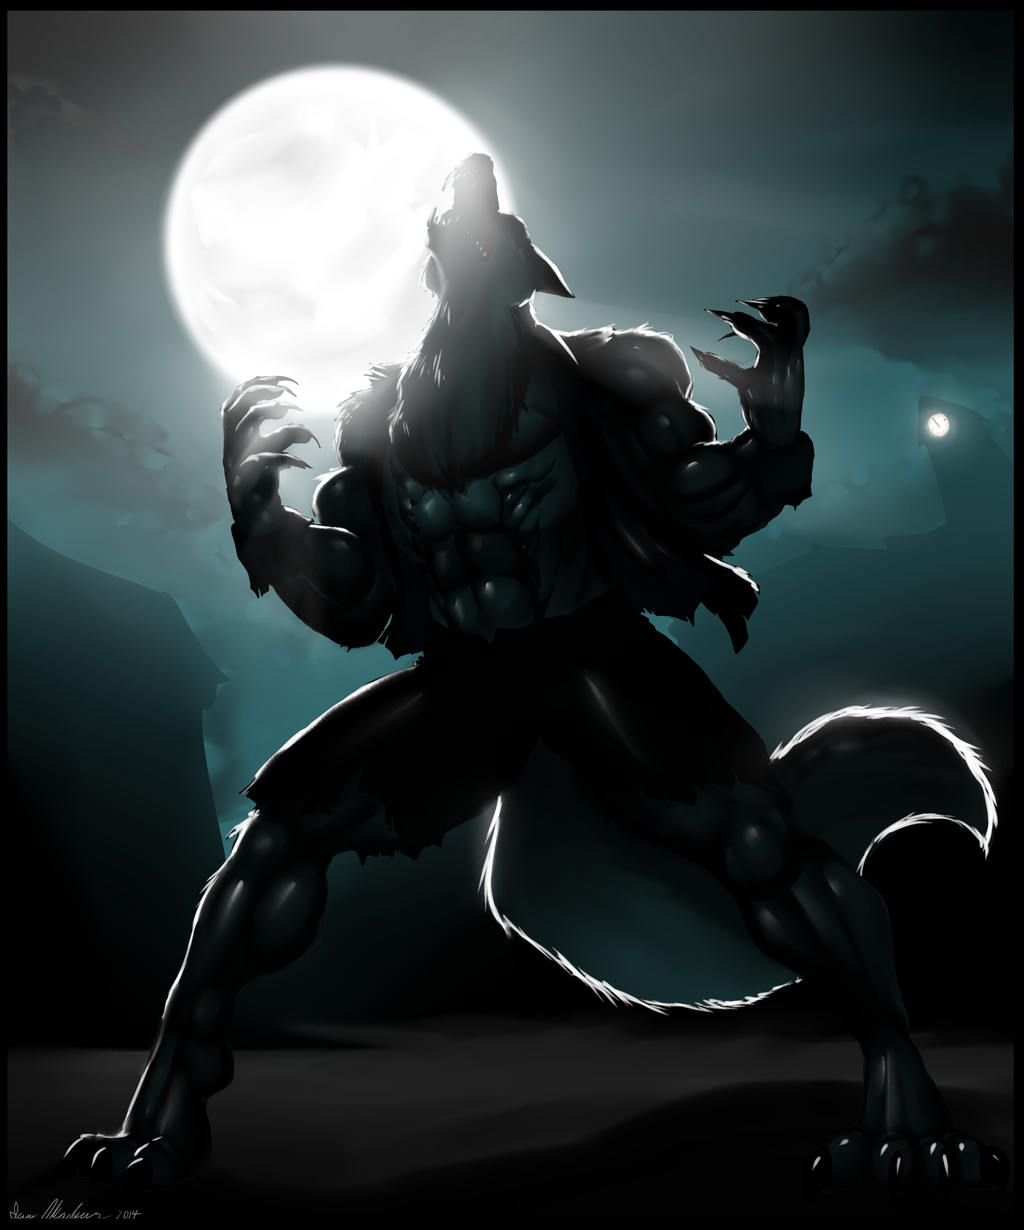 Most recent image: Howl at the Moon